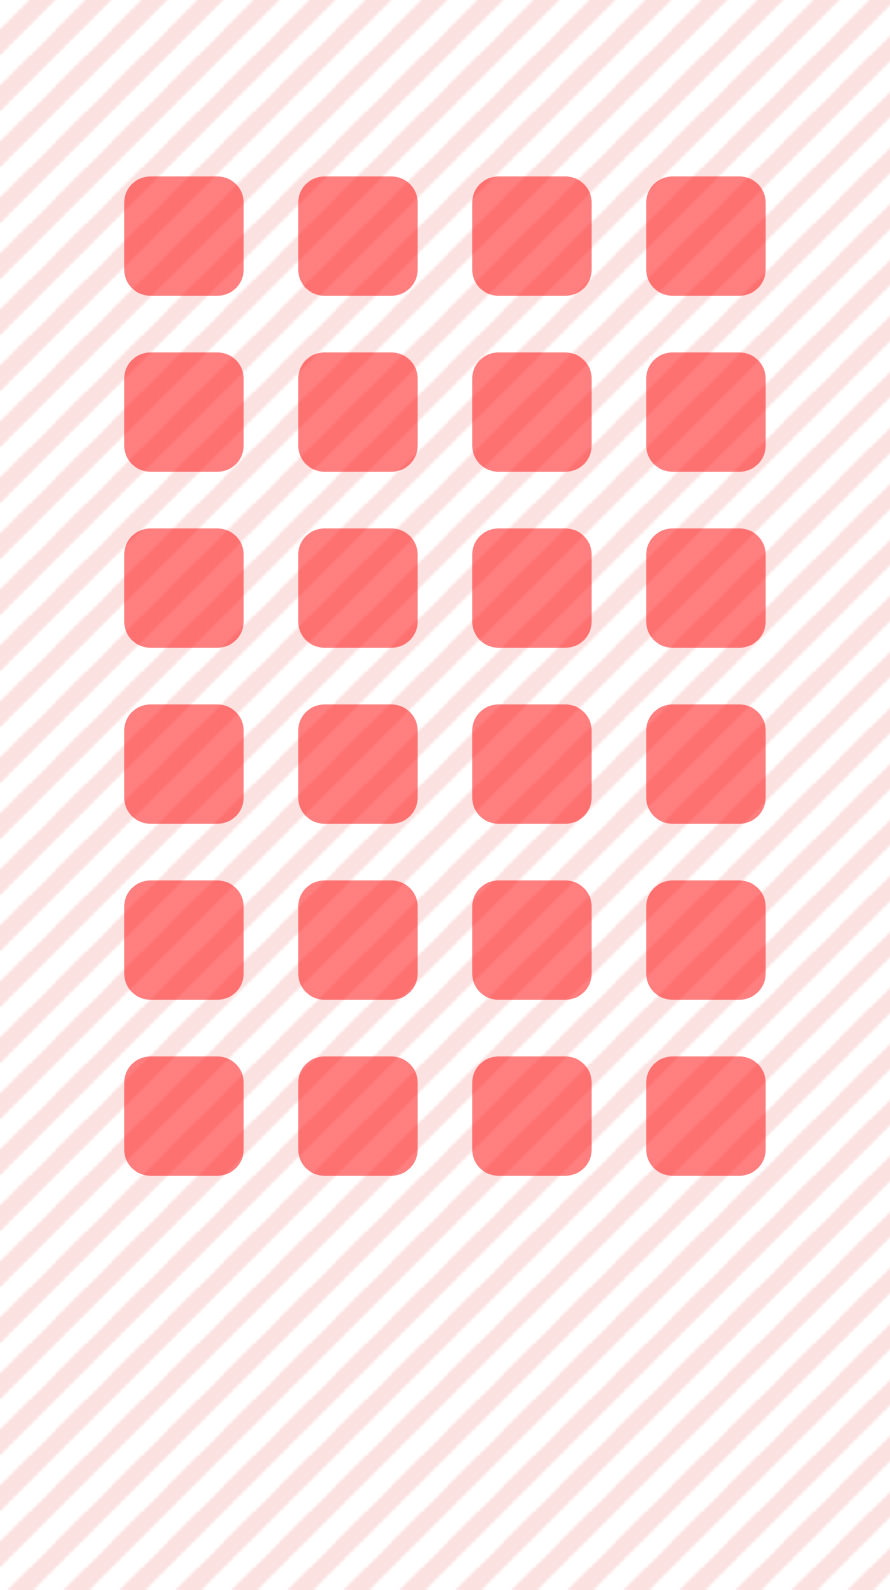 Iphone clipart border Red iPhone6s iPhone pink 6